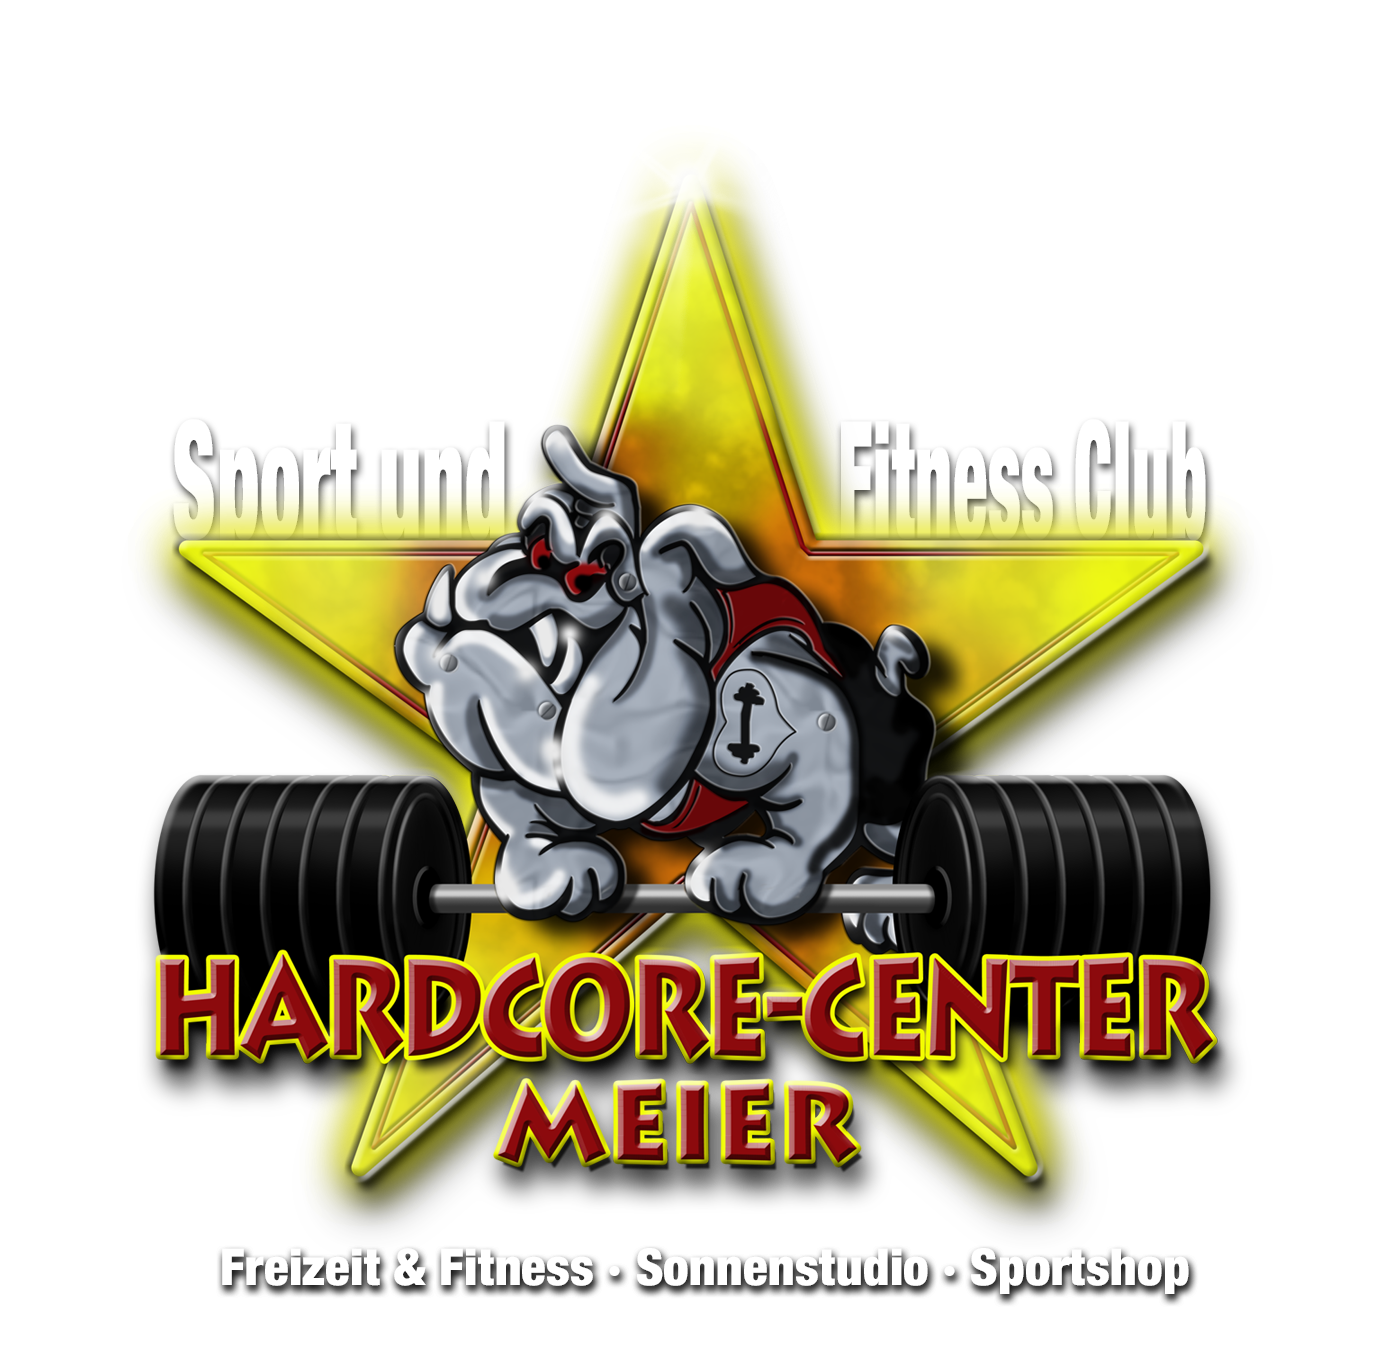 Sport & Fitness Club - HARDCORE-CENTER MEIER 90542 Eckental